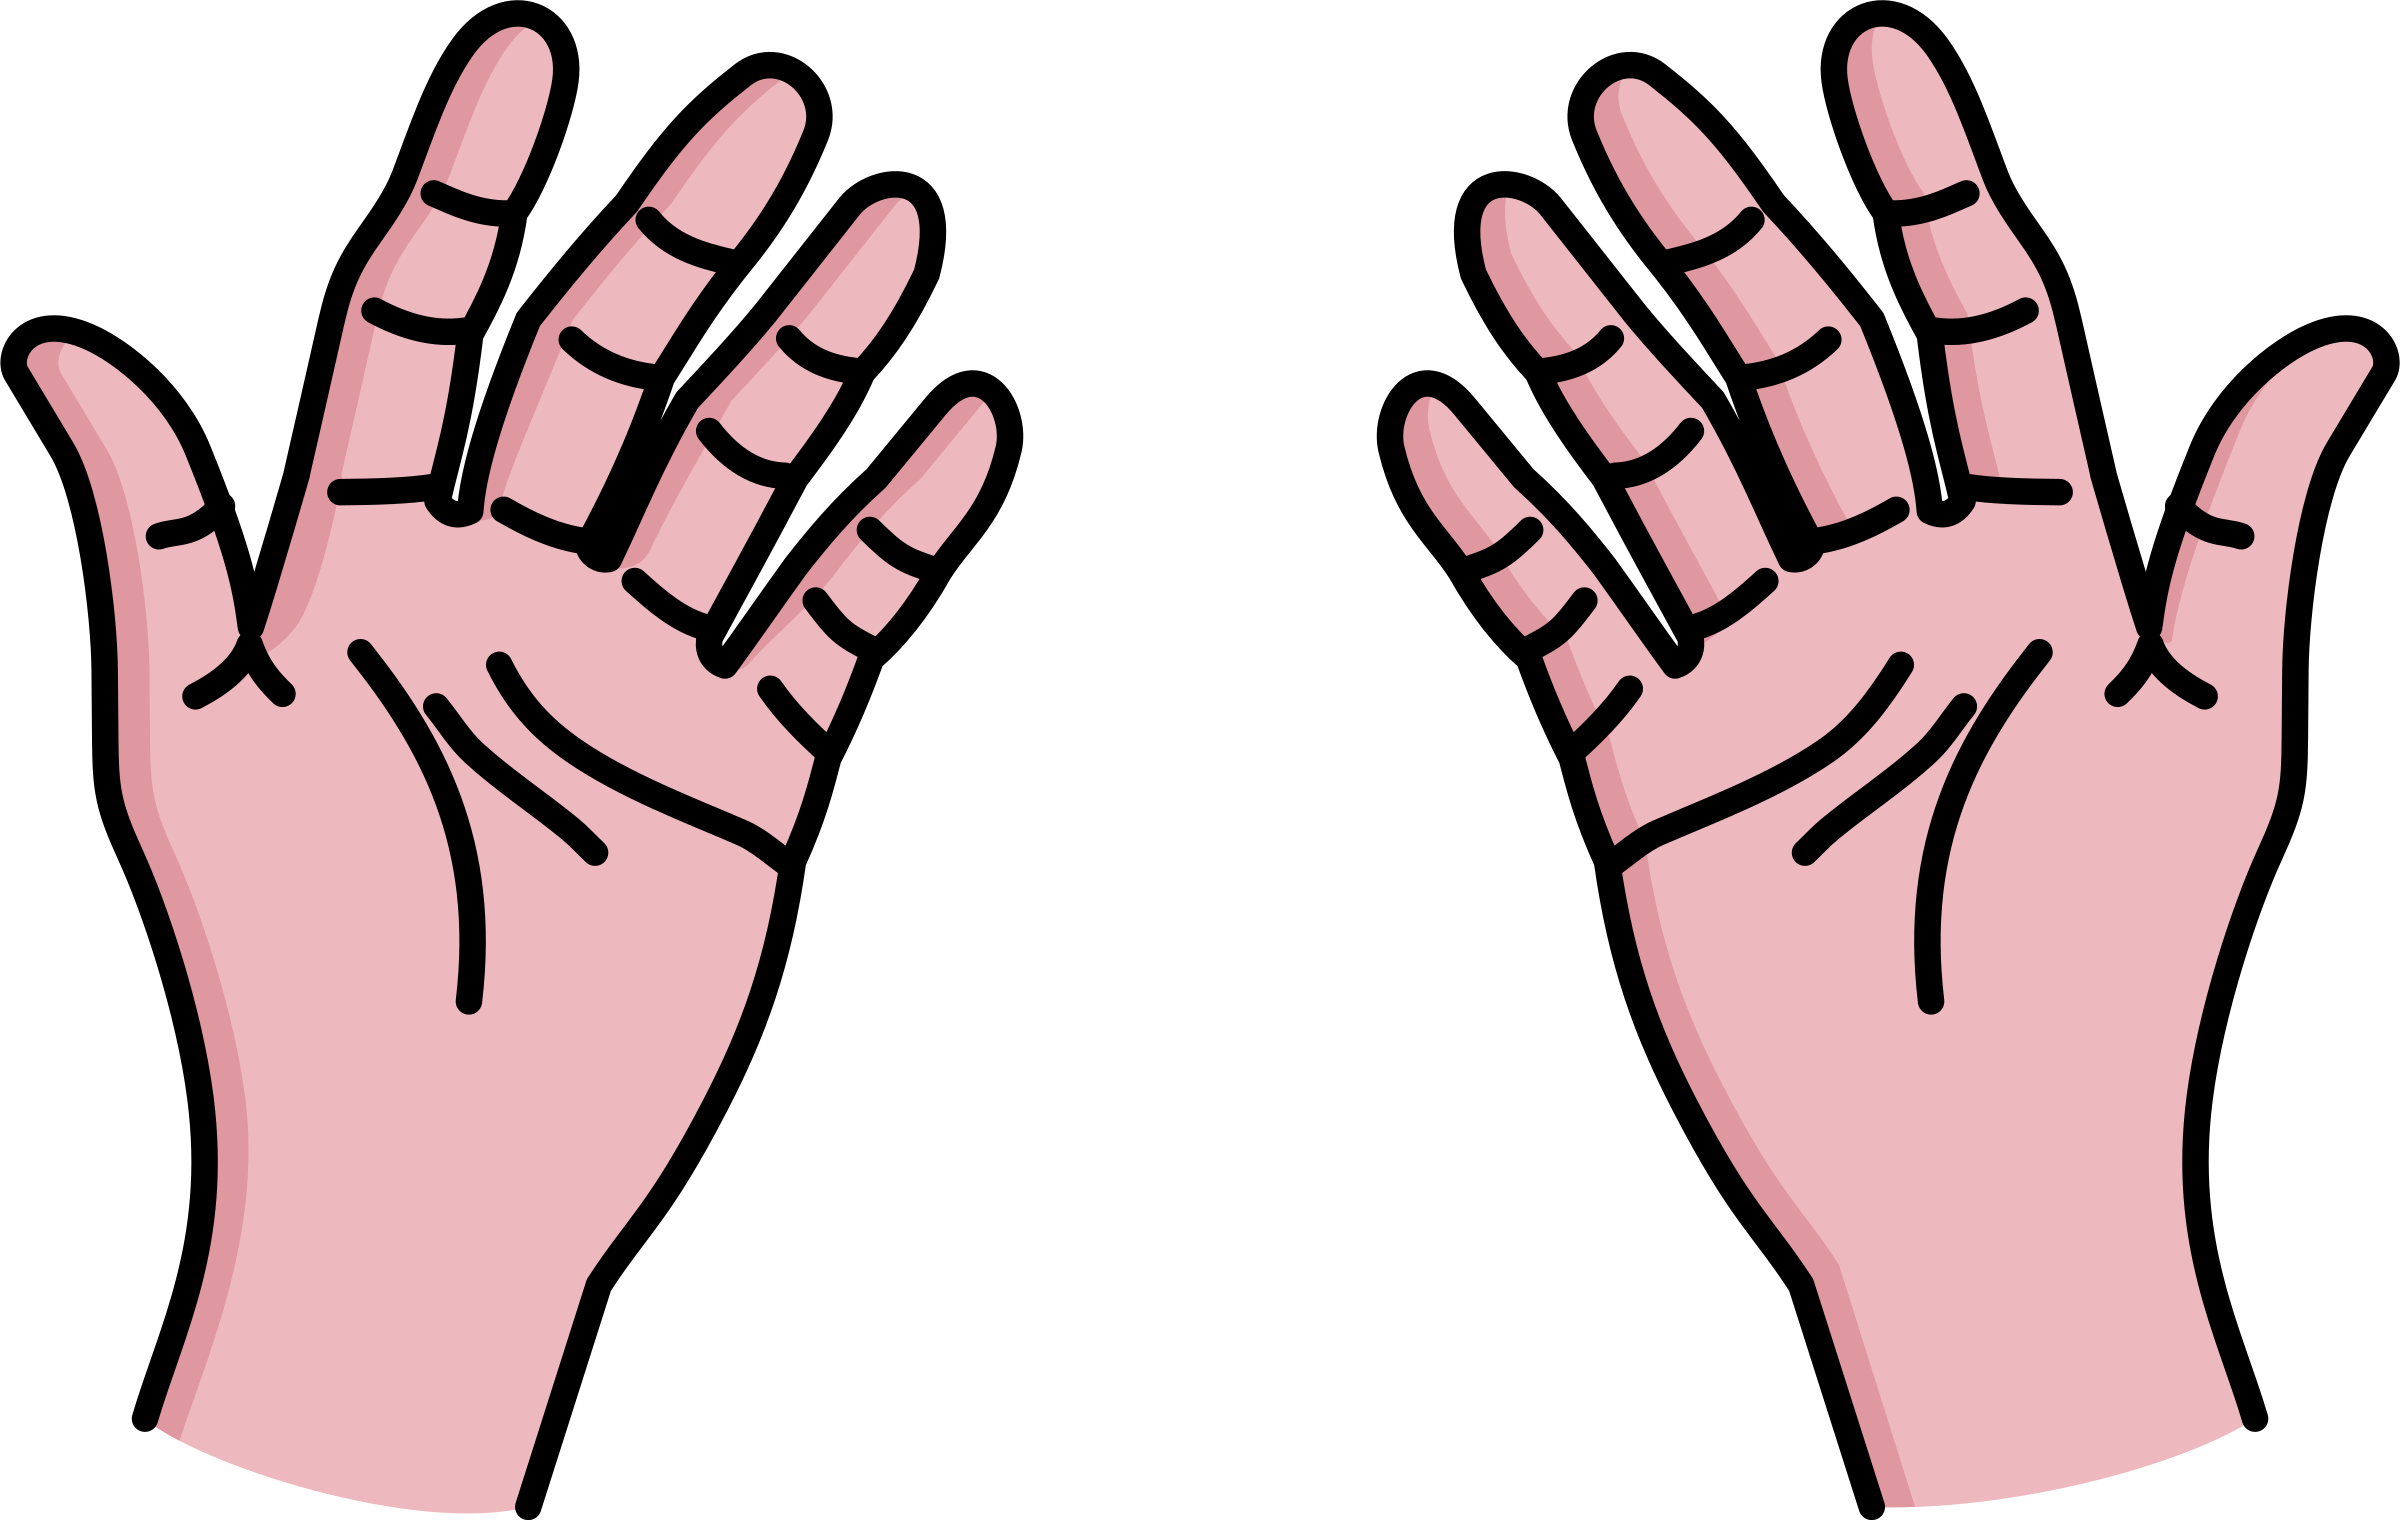 collection of pair. Volleyball clipart hand image free download